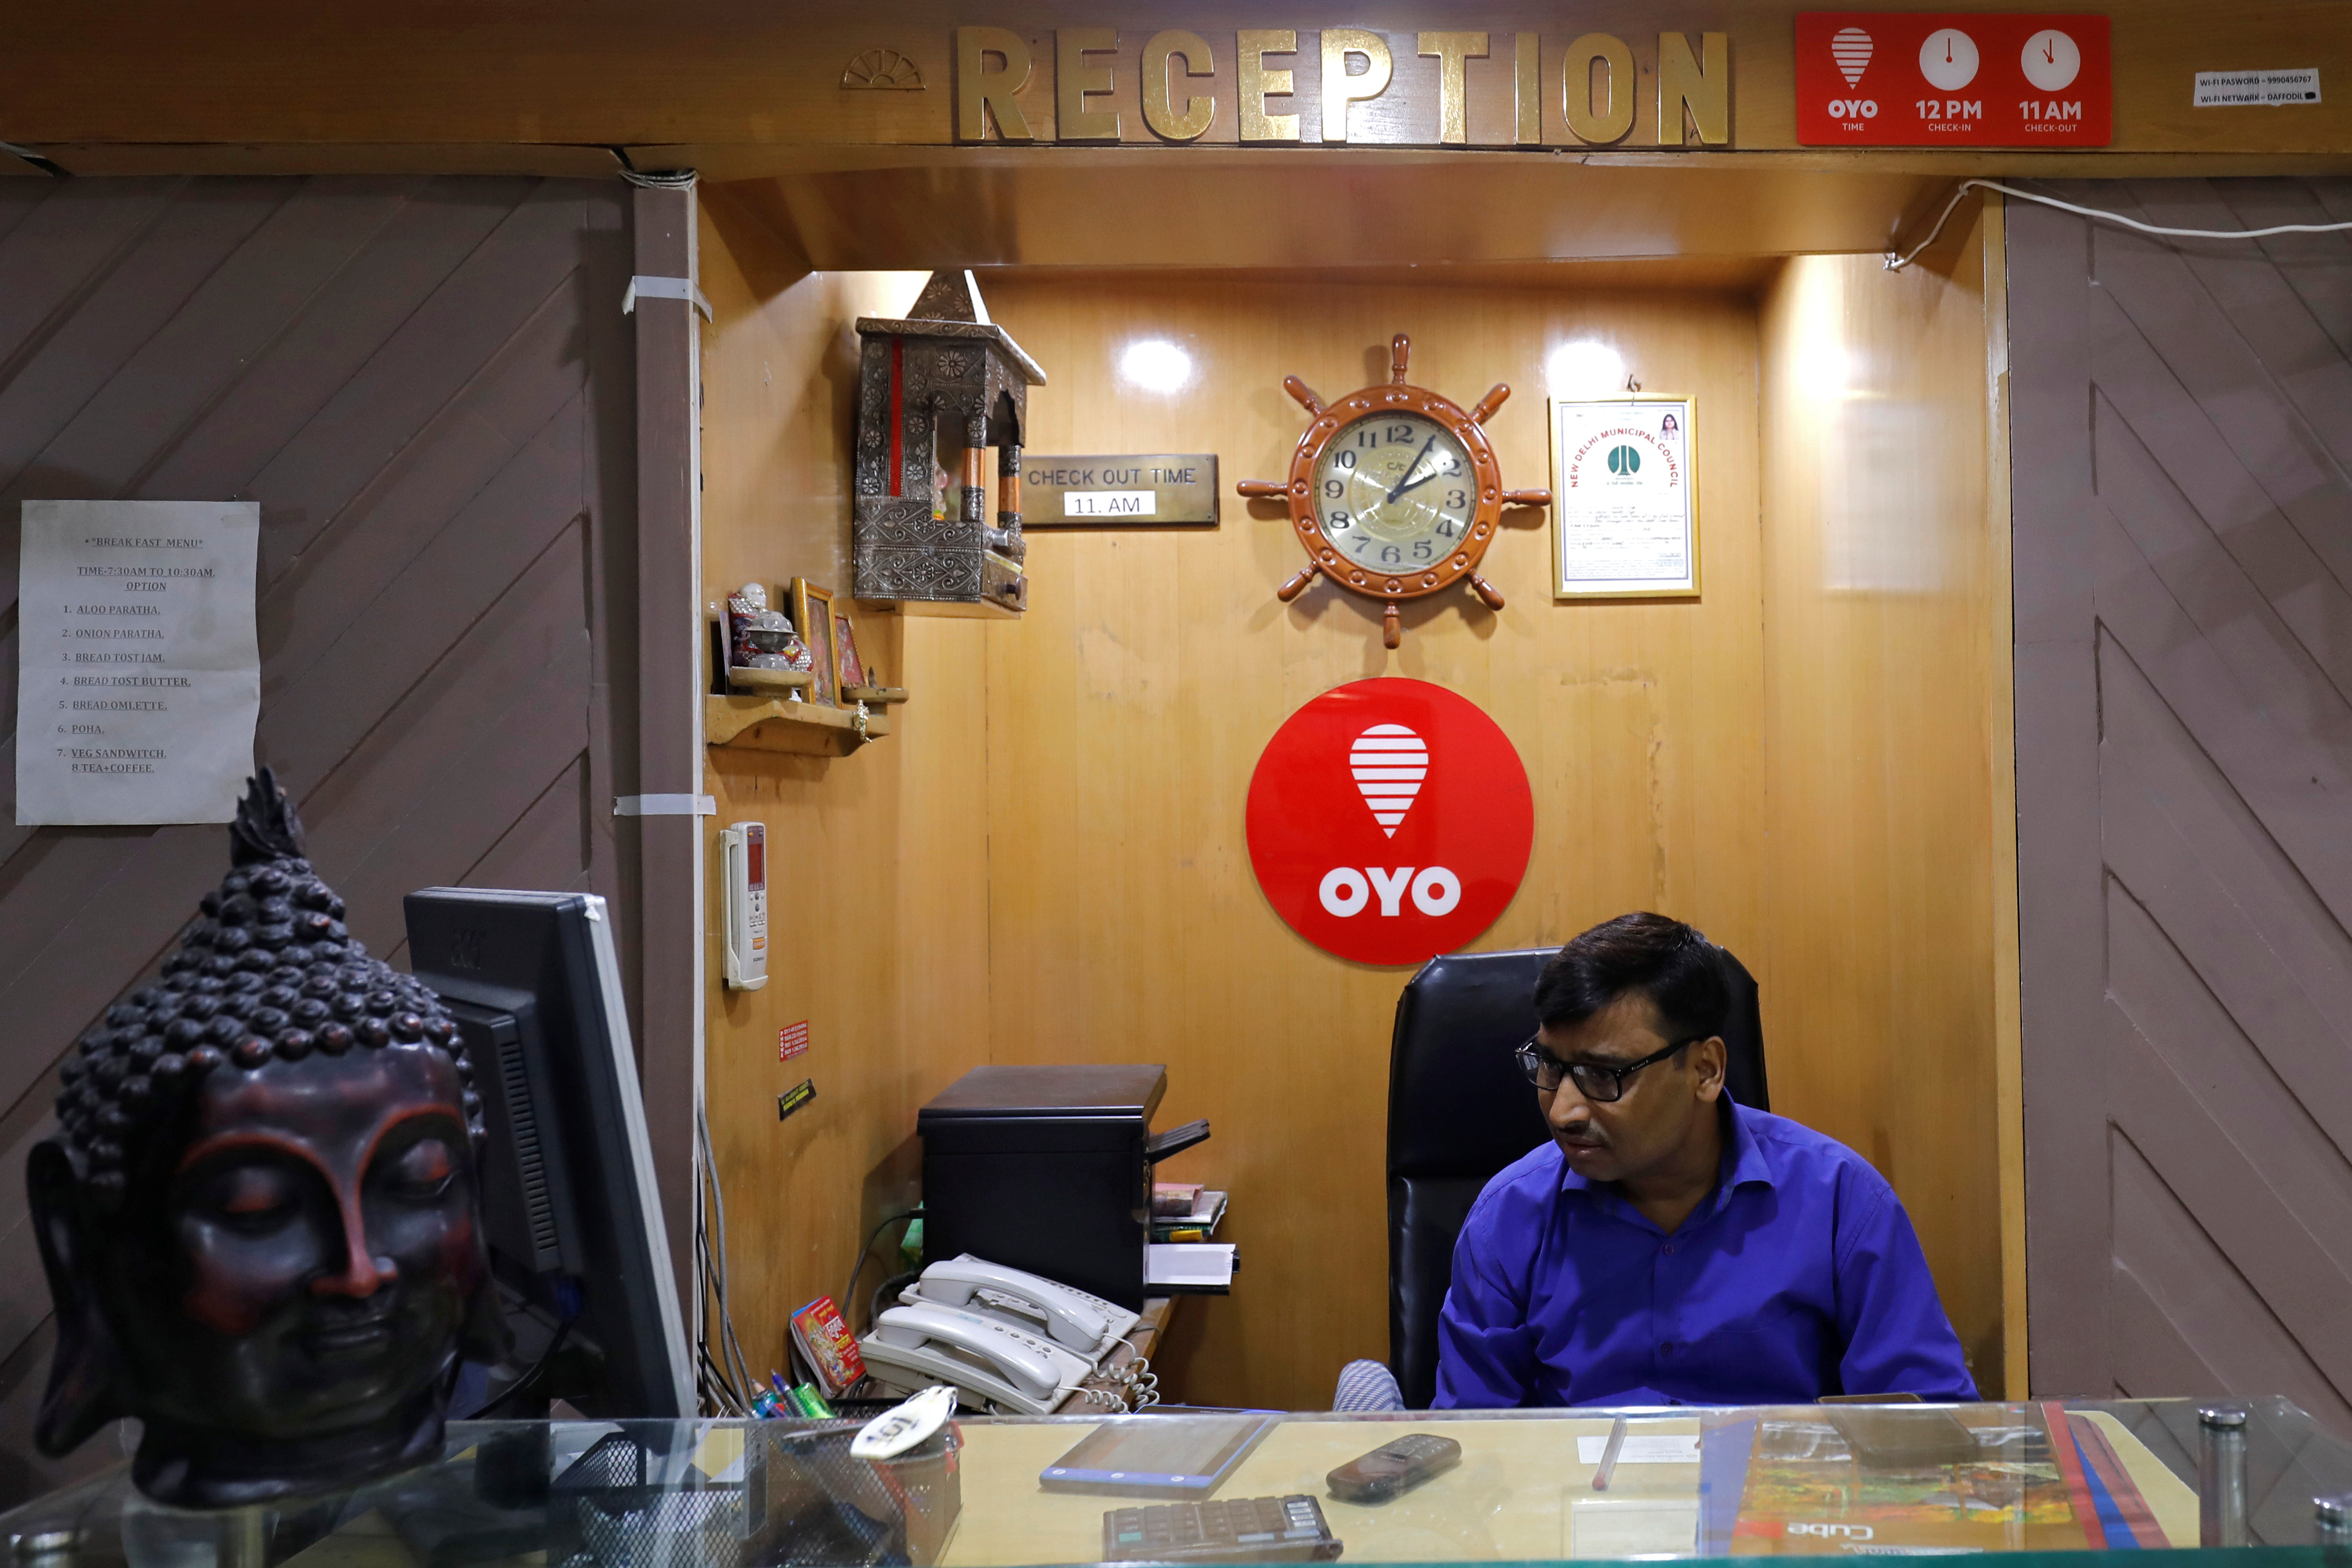 An employee sits next to the logo of OYO, India's largest and fastest-growing hotel chain, at the reception of a hotel in New Delhi, India, September 25, 2018. REUTERS/Anushree Fadnavis